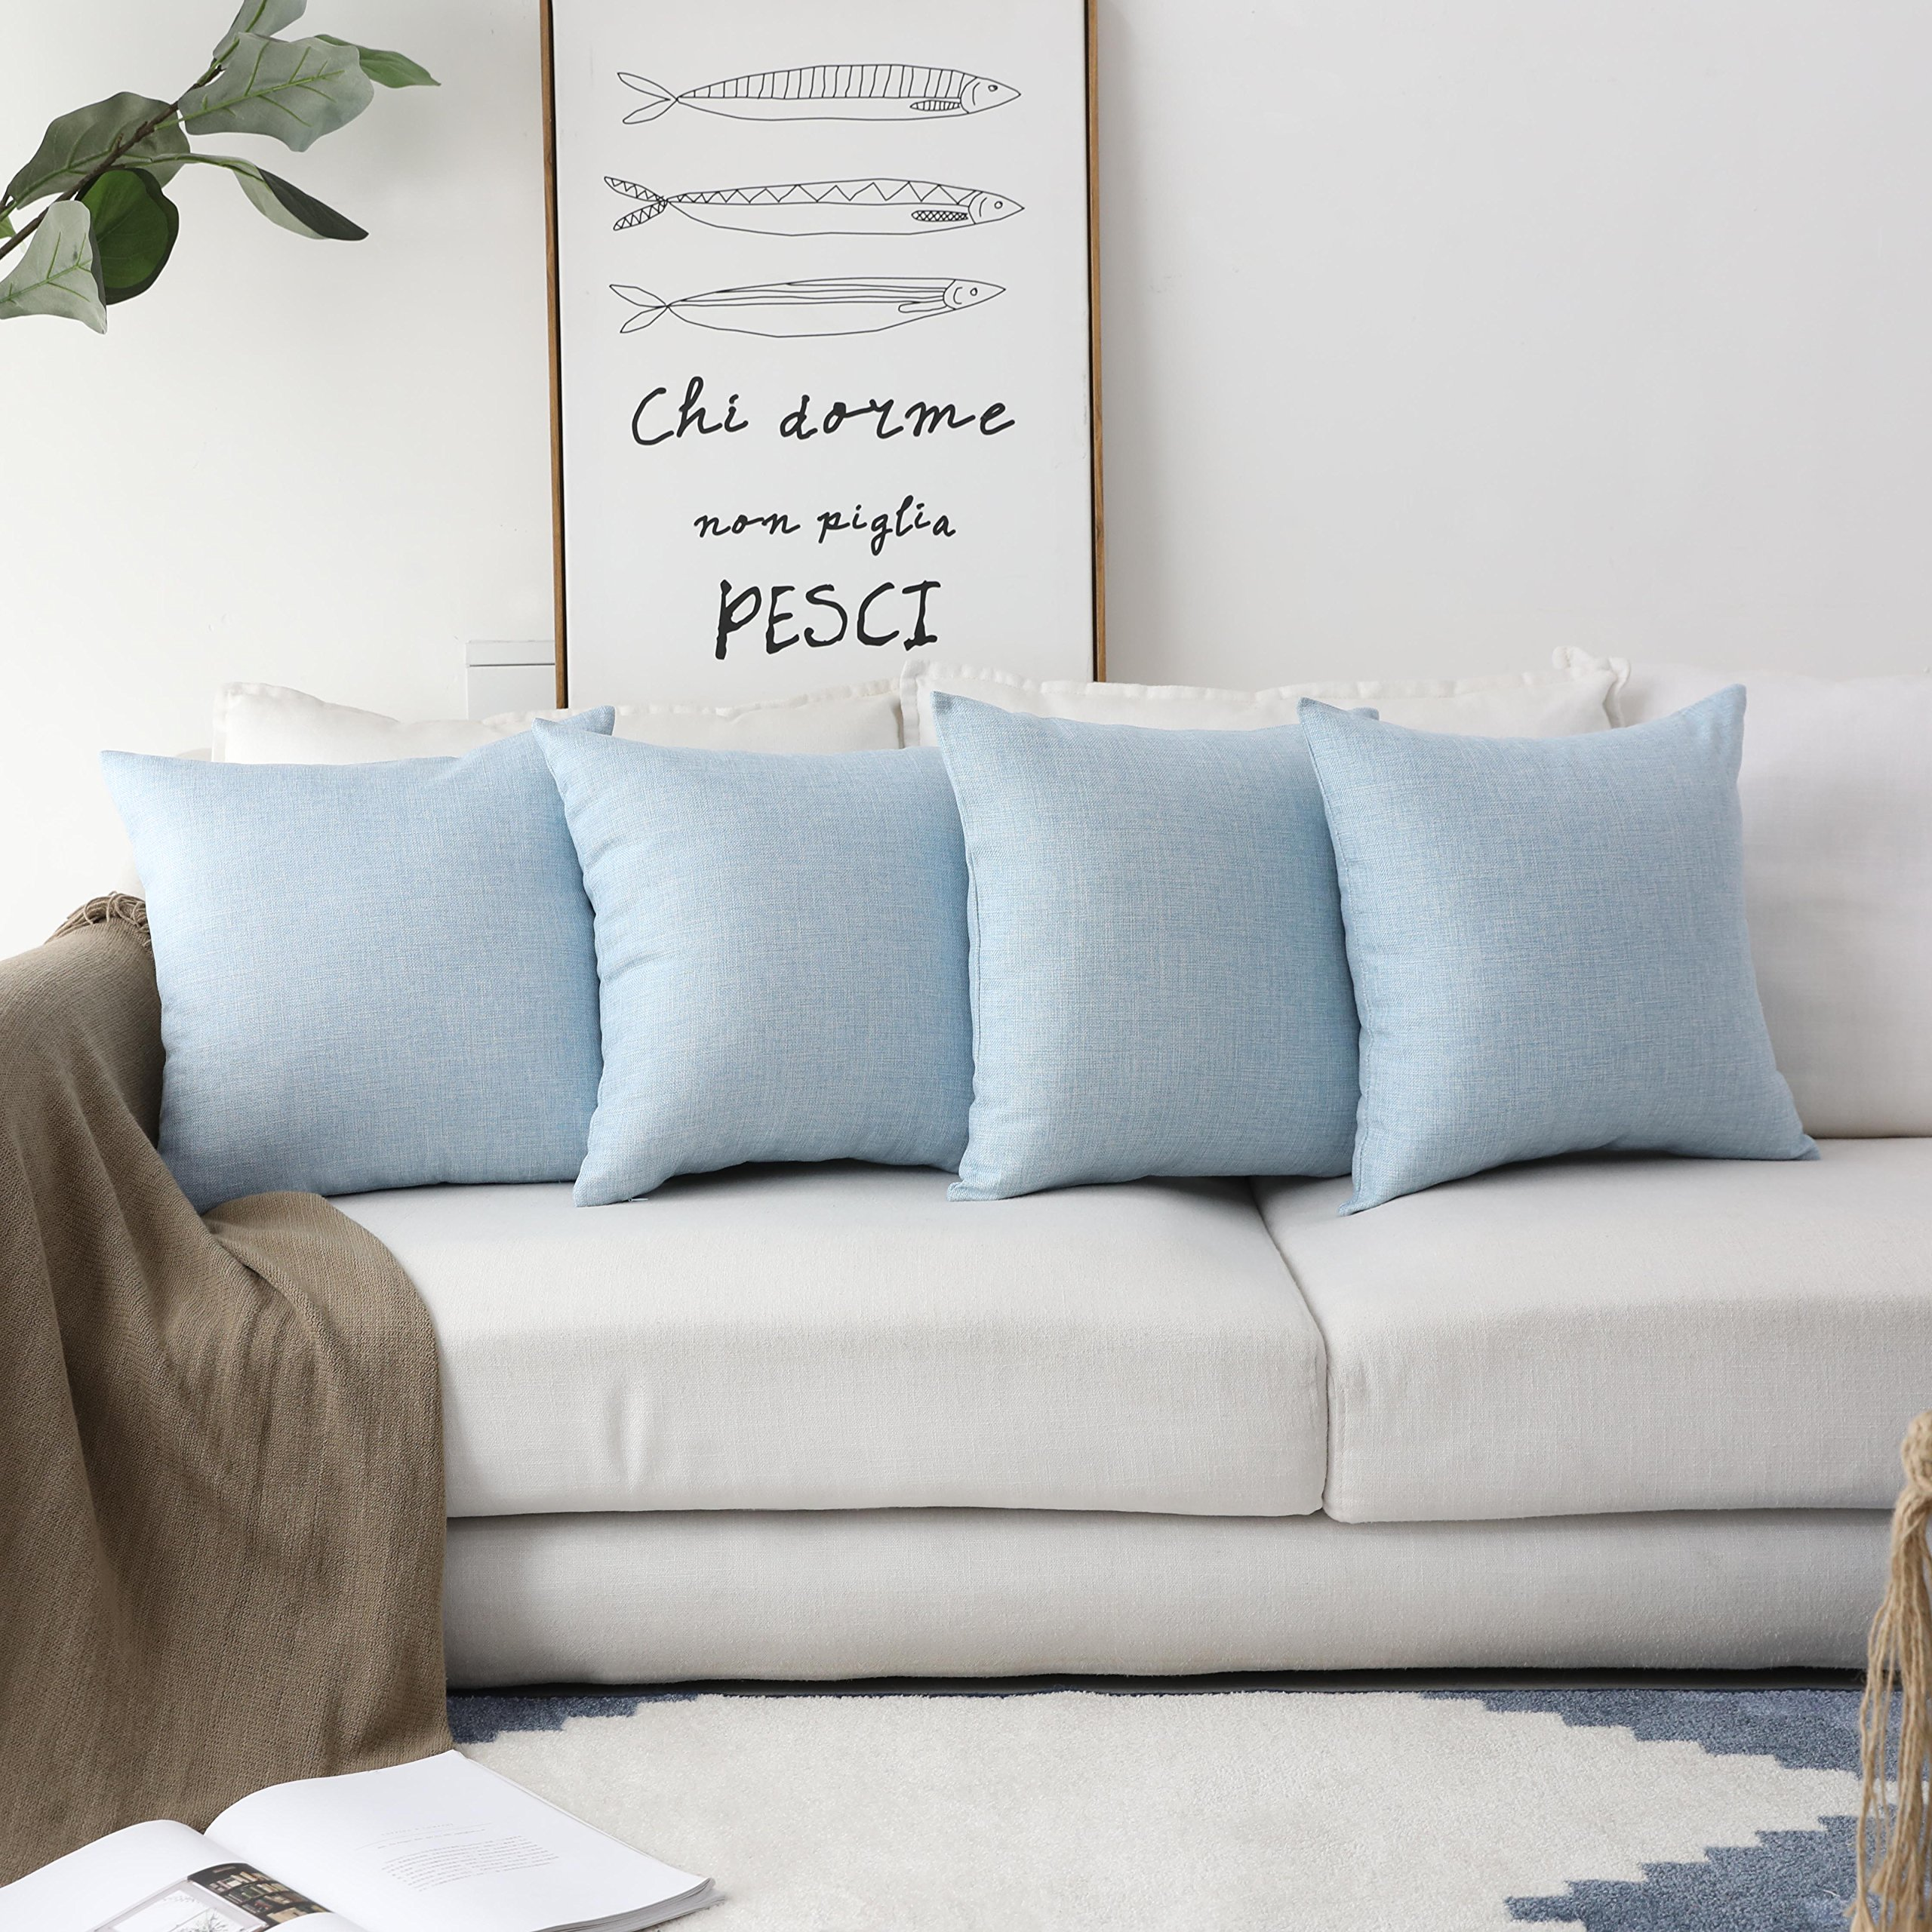 HOME BRILLIANT Supersoft Fuax Linen Square Throw Pillows Sham Cushion Covers for Kids, Light Blue, 45cm, 4 Pack